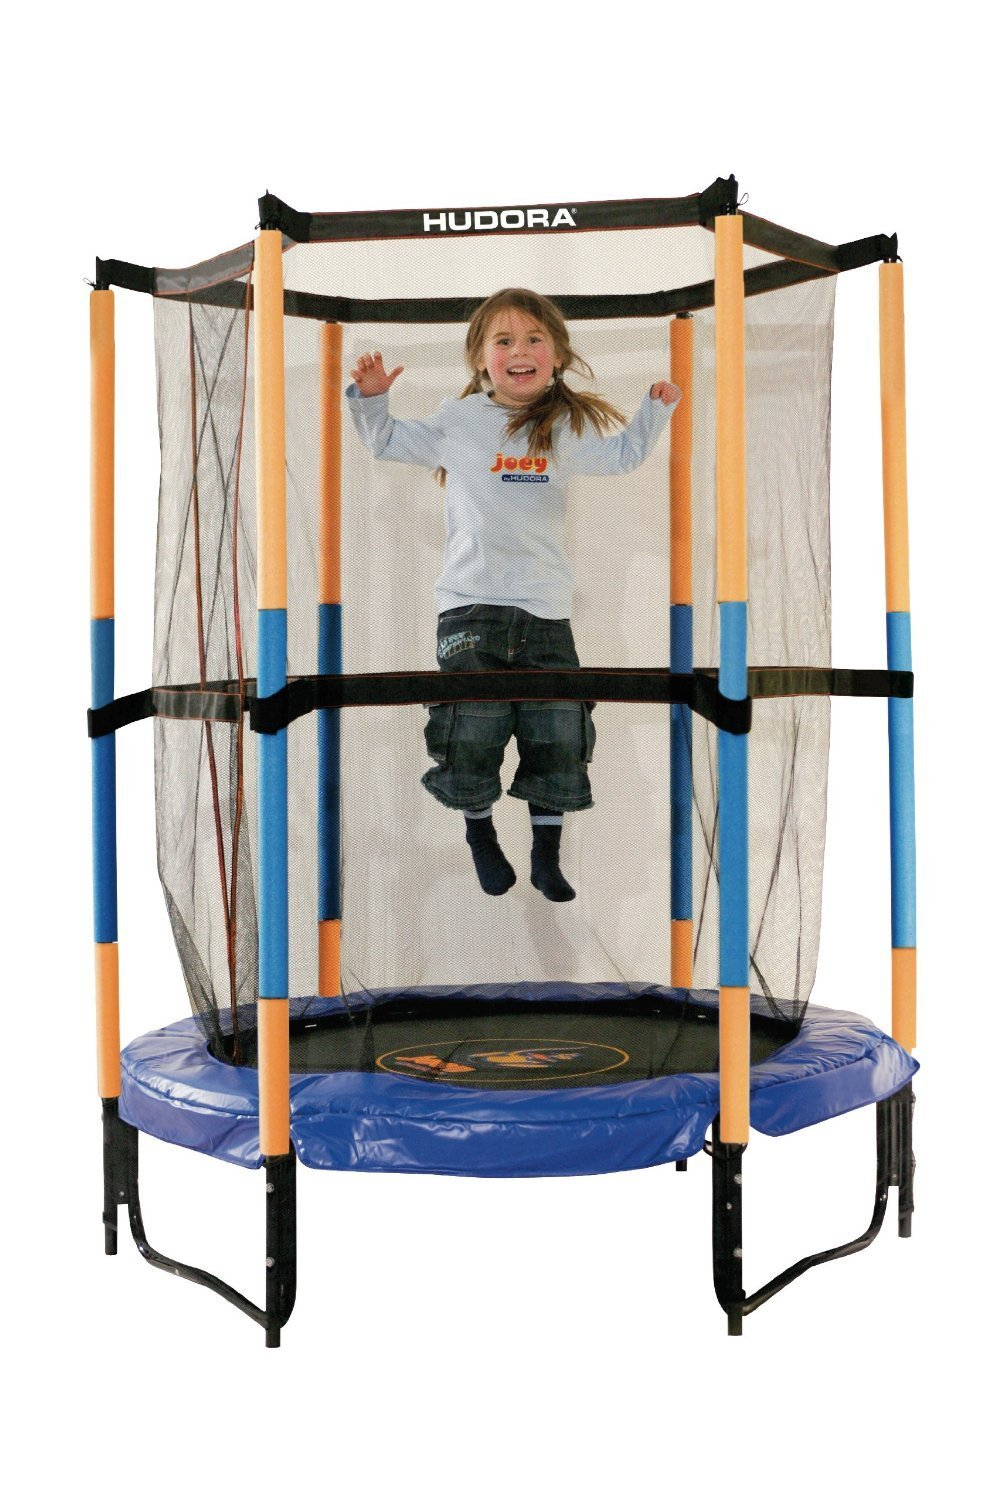 kindertrampolin test vergleich und kaufberatung. Black Bedroom Furniture Sets. Home Design Ideas